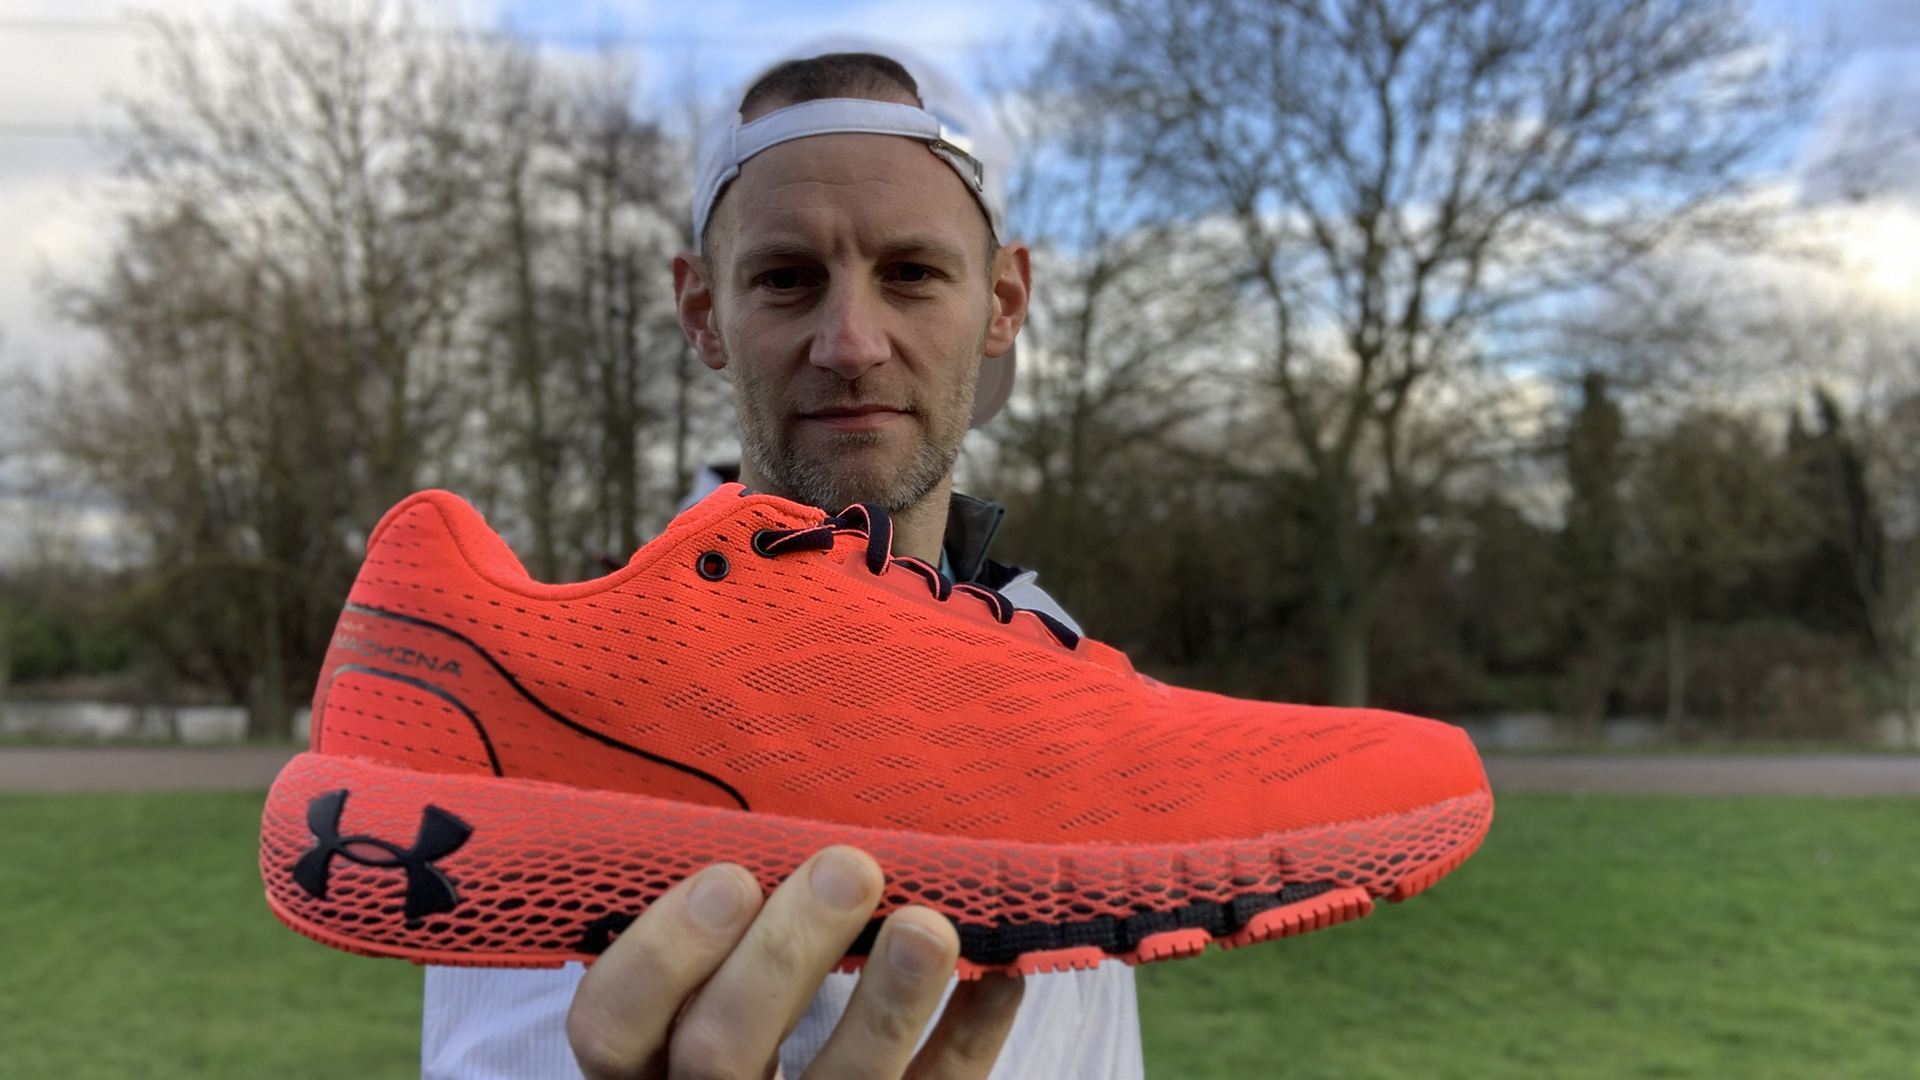 Under Armour HOVR Machina review: The